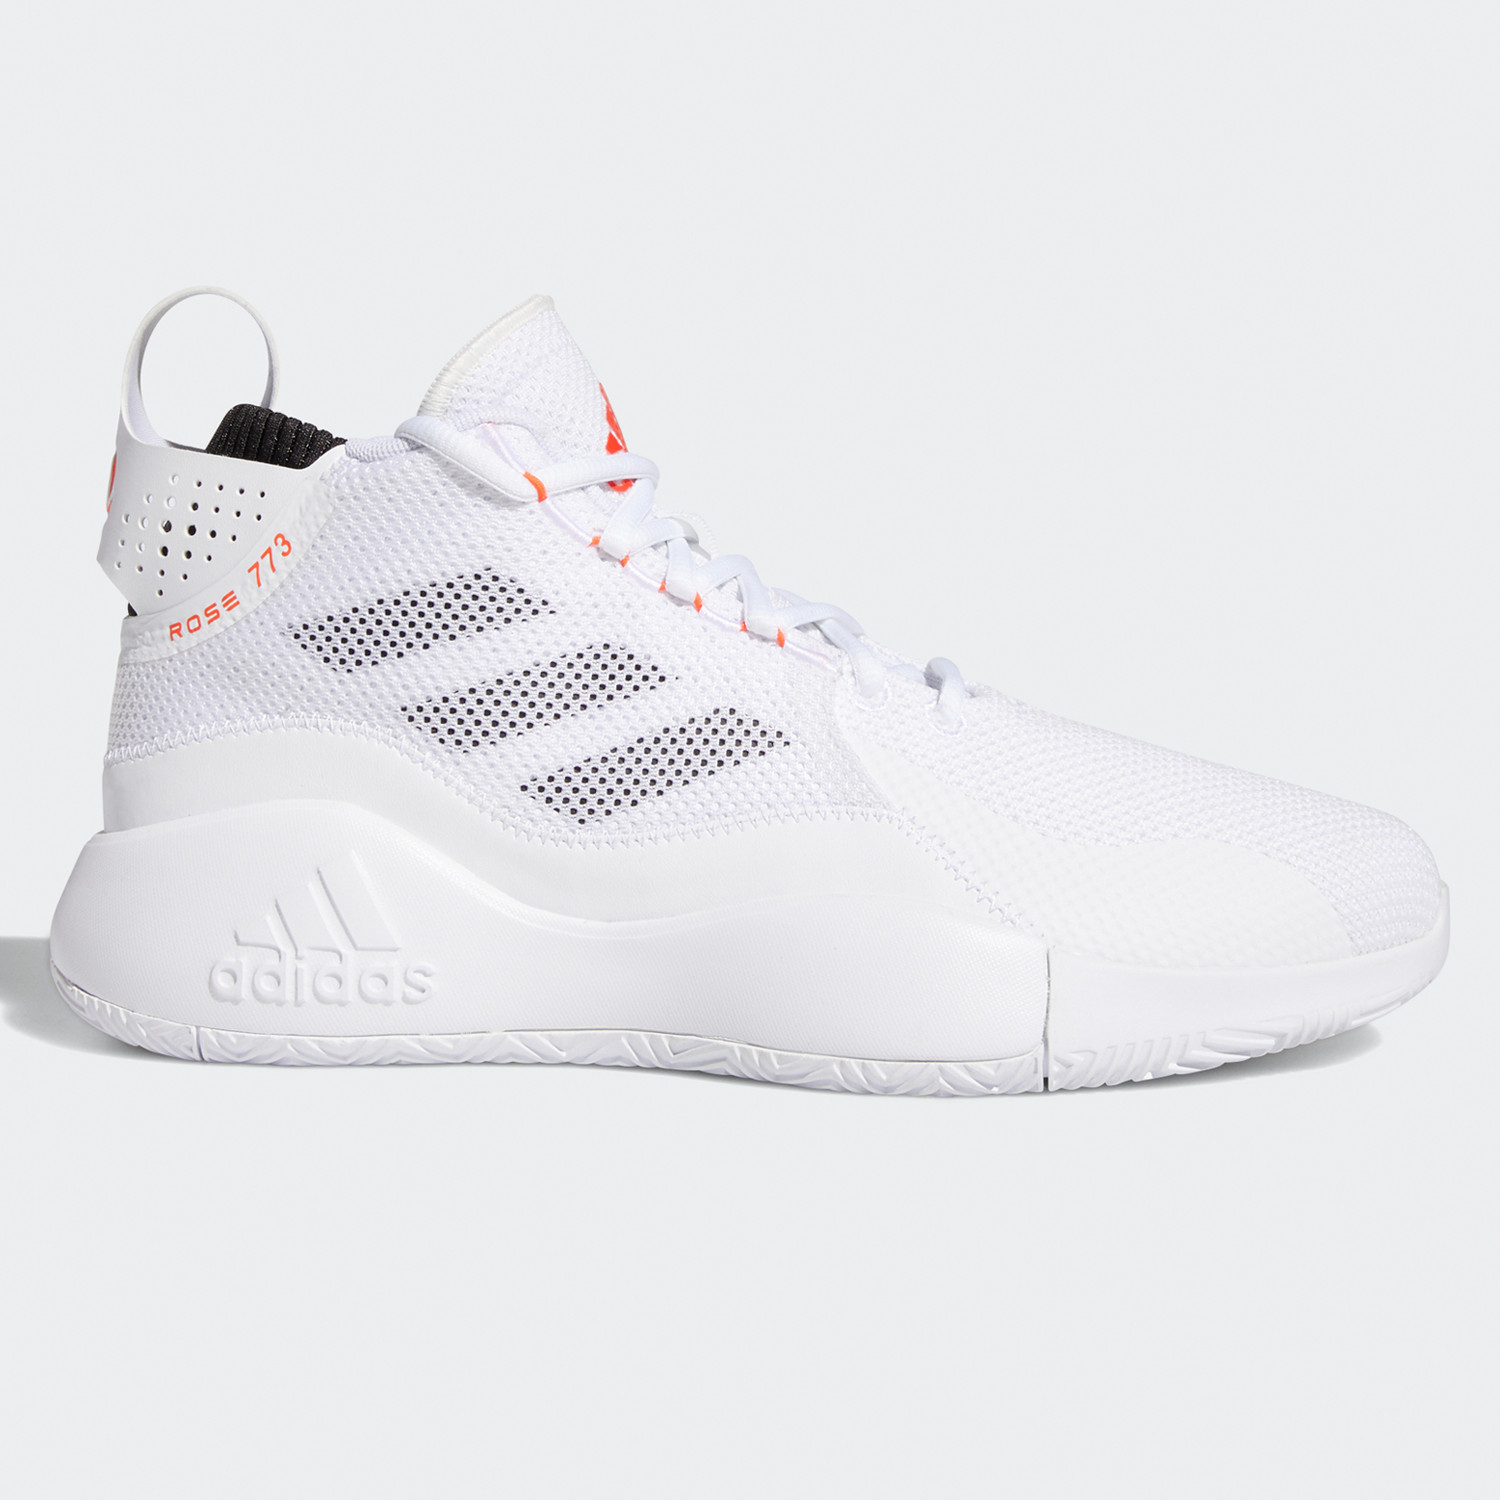 adidas Performance D Rose 773 2020 Ανδρικά Παπούτσια Για Μπάσκετ (9000059050_10939)